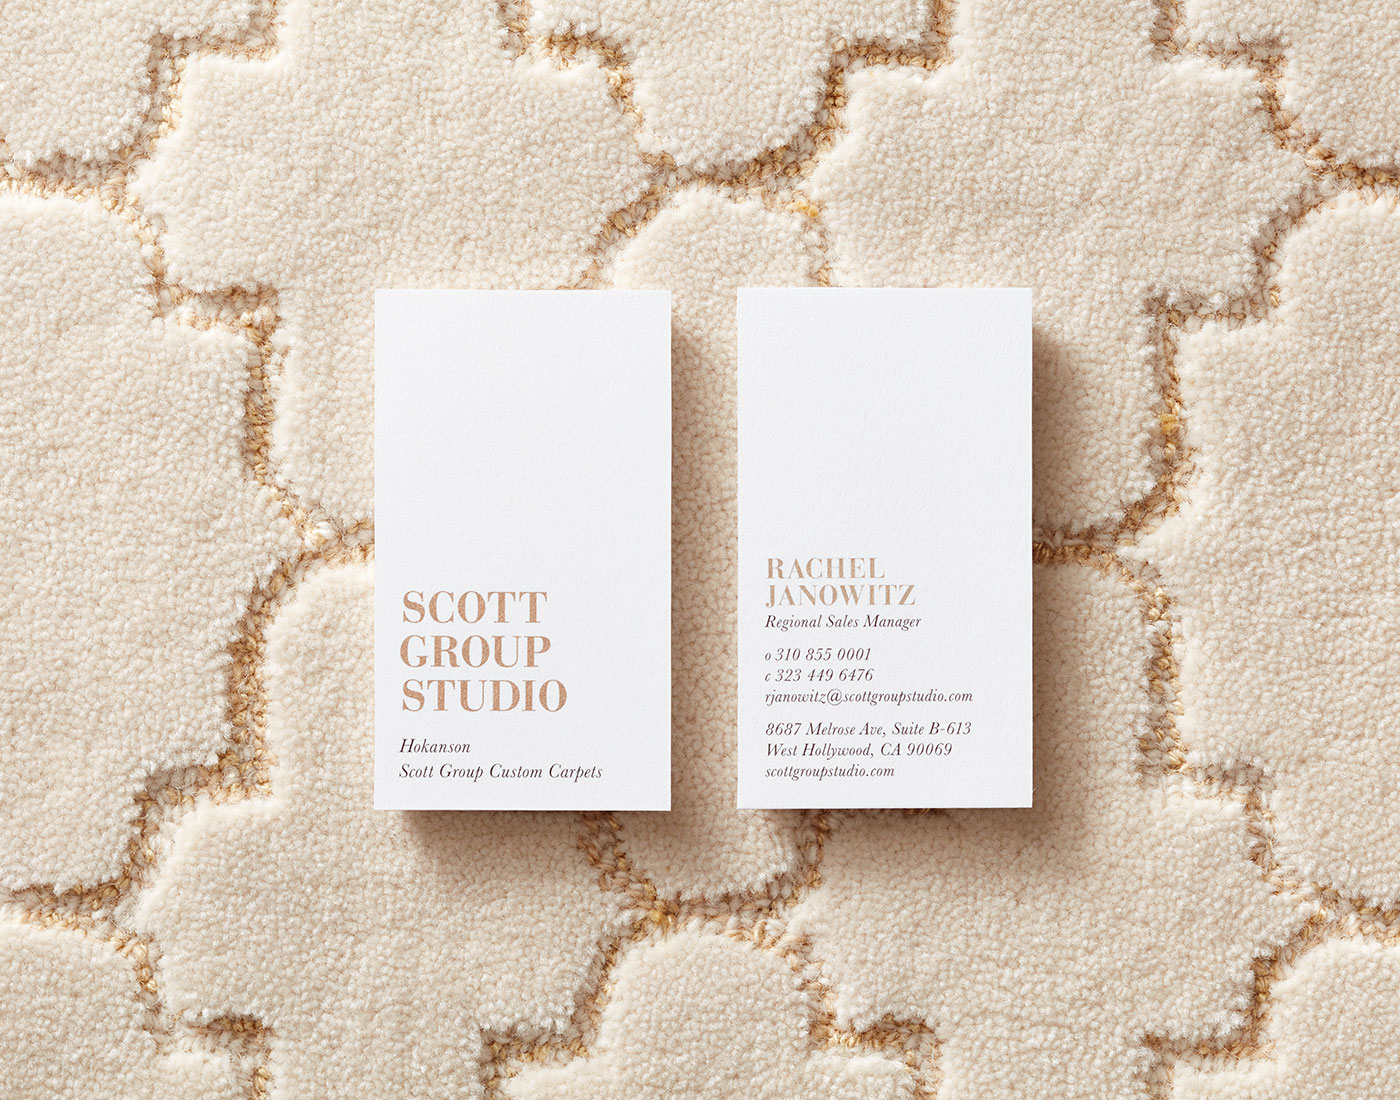 Scott Group Studio business cards